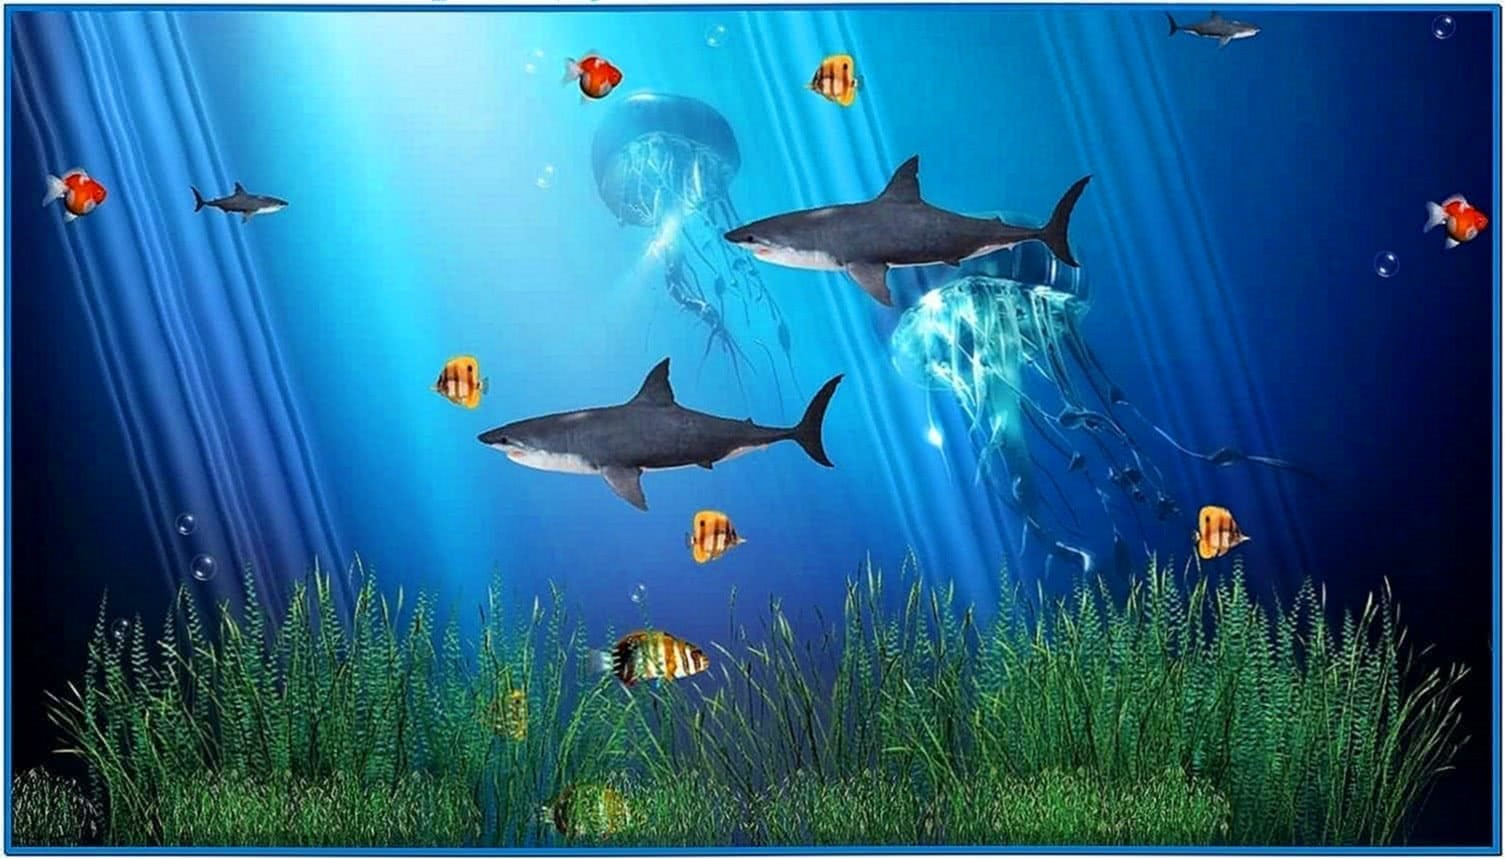 Animated Fish Screensaver Windows 7